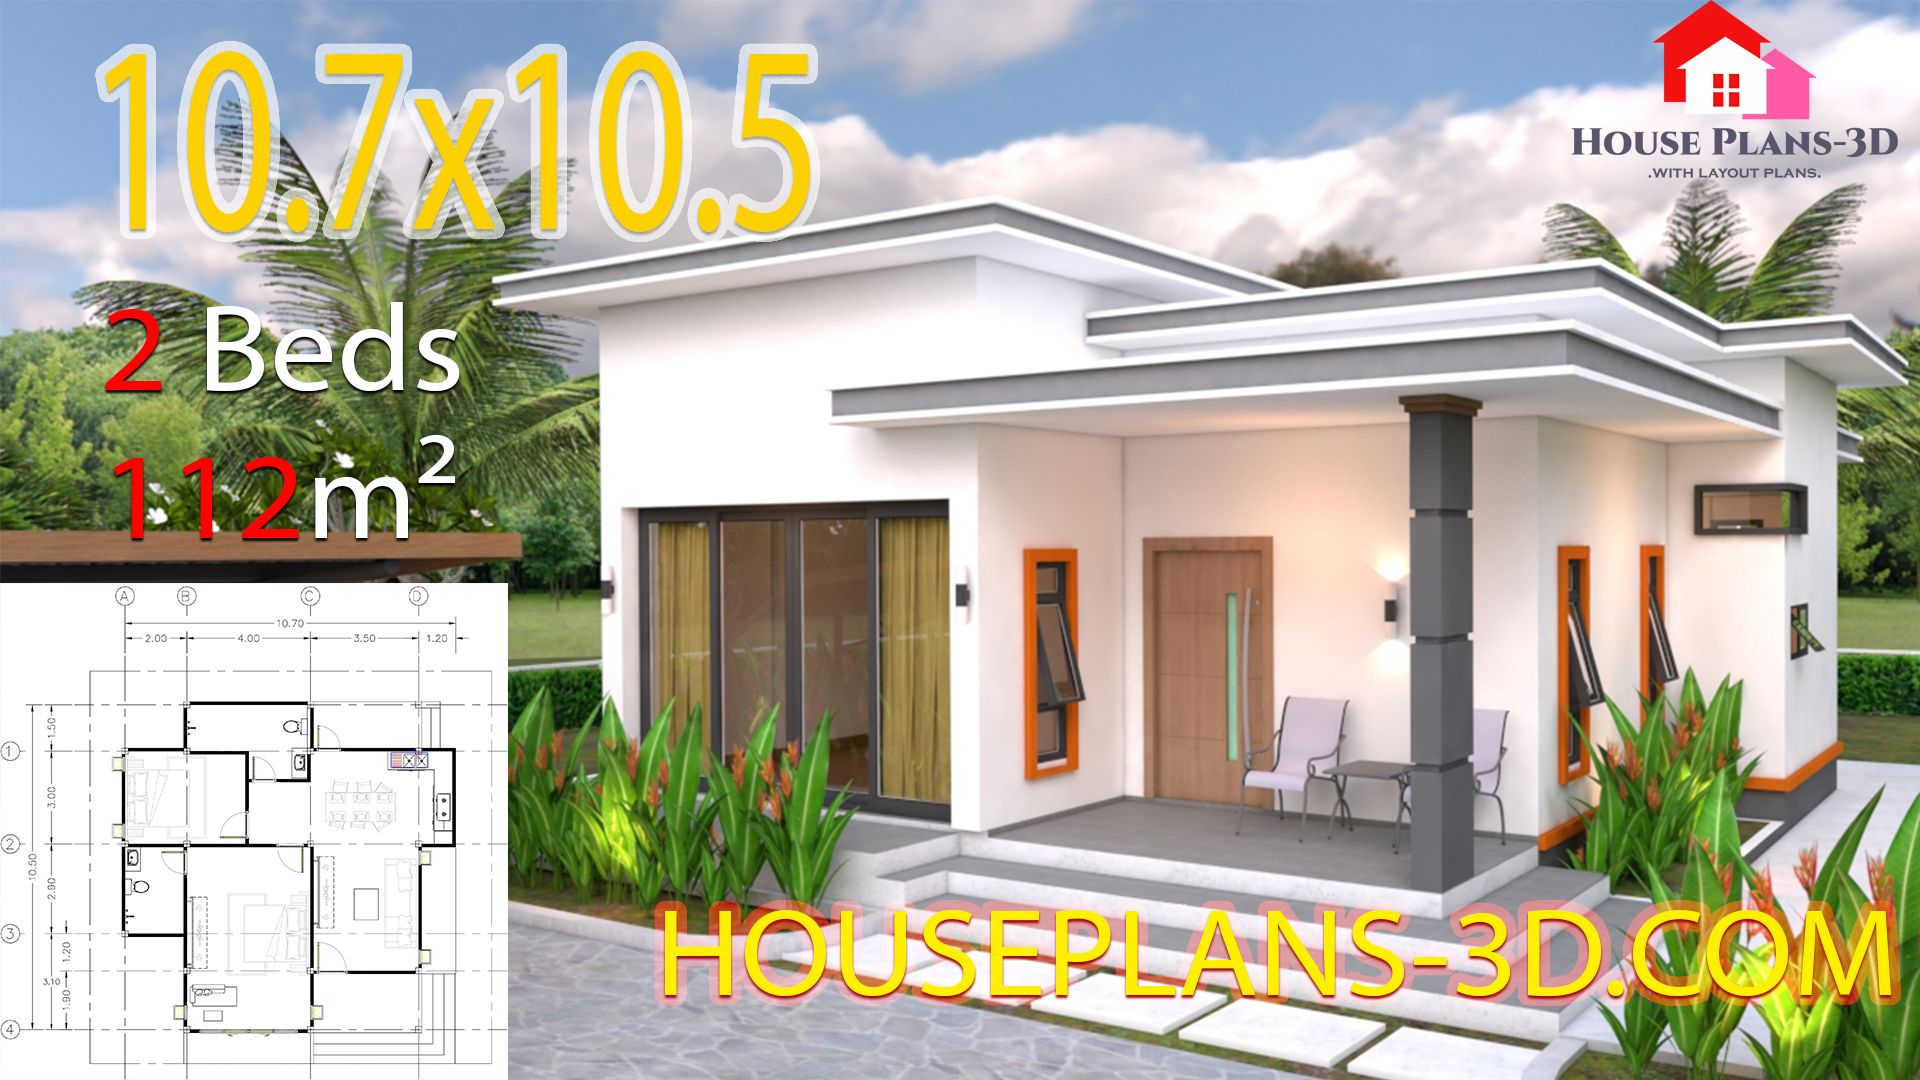 House Plans Flat Roof In 2020 House Plans Flat Roof House Small House Design Plans